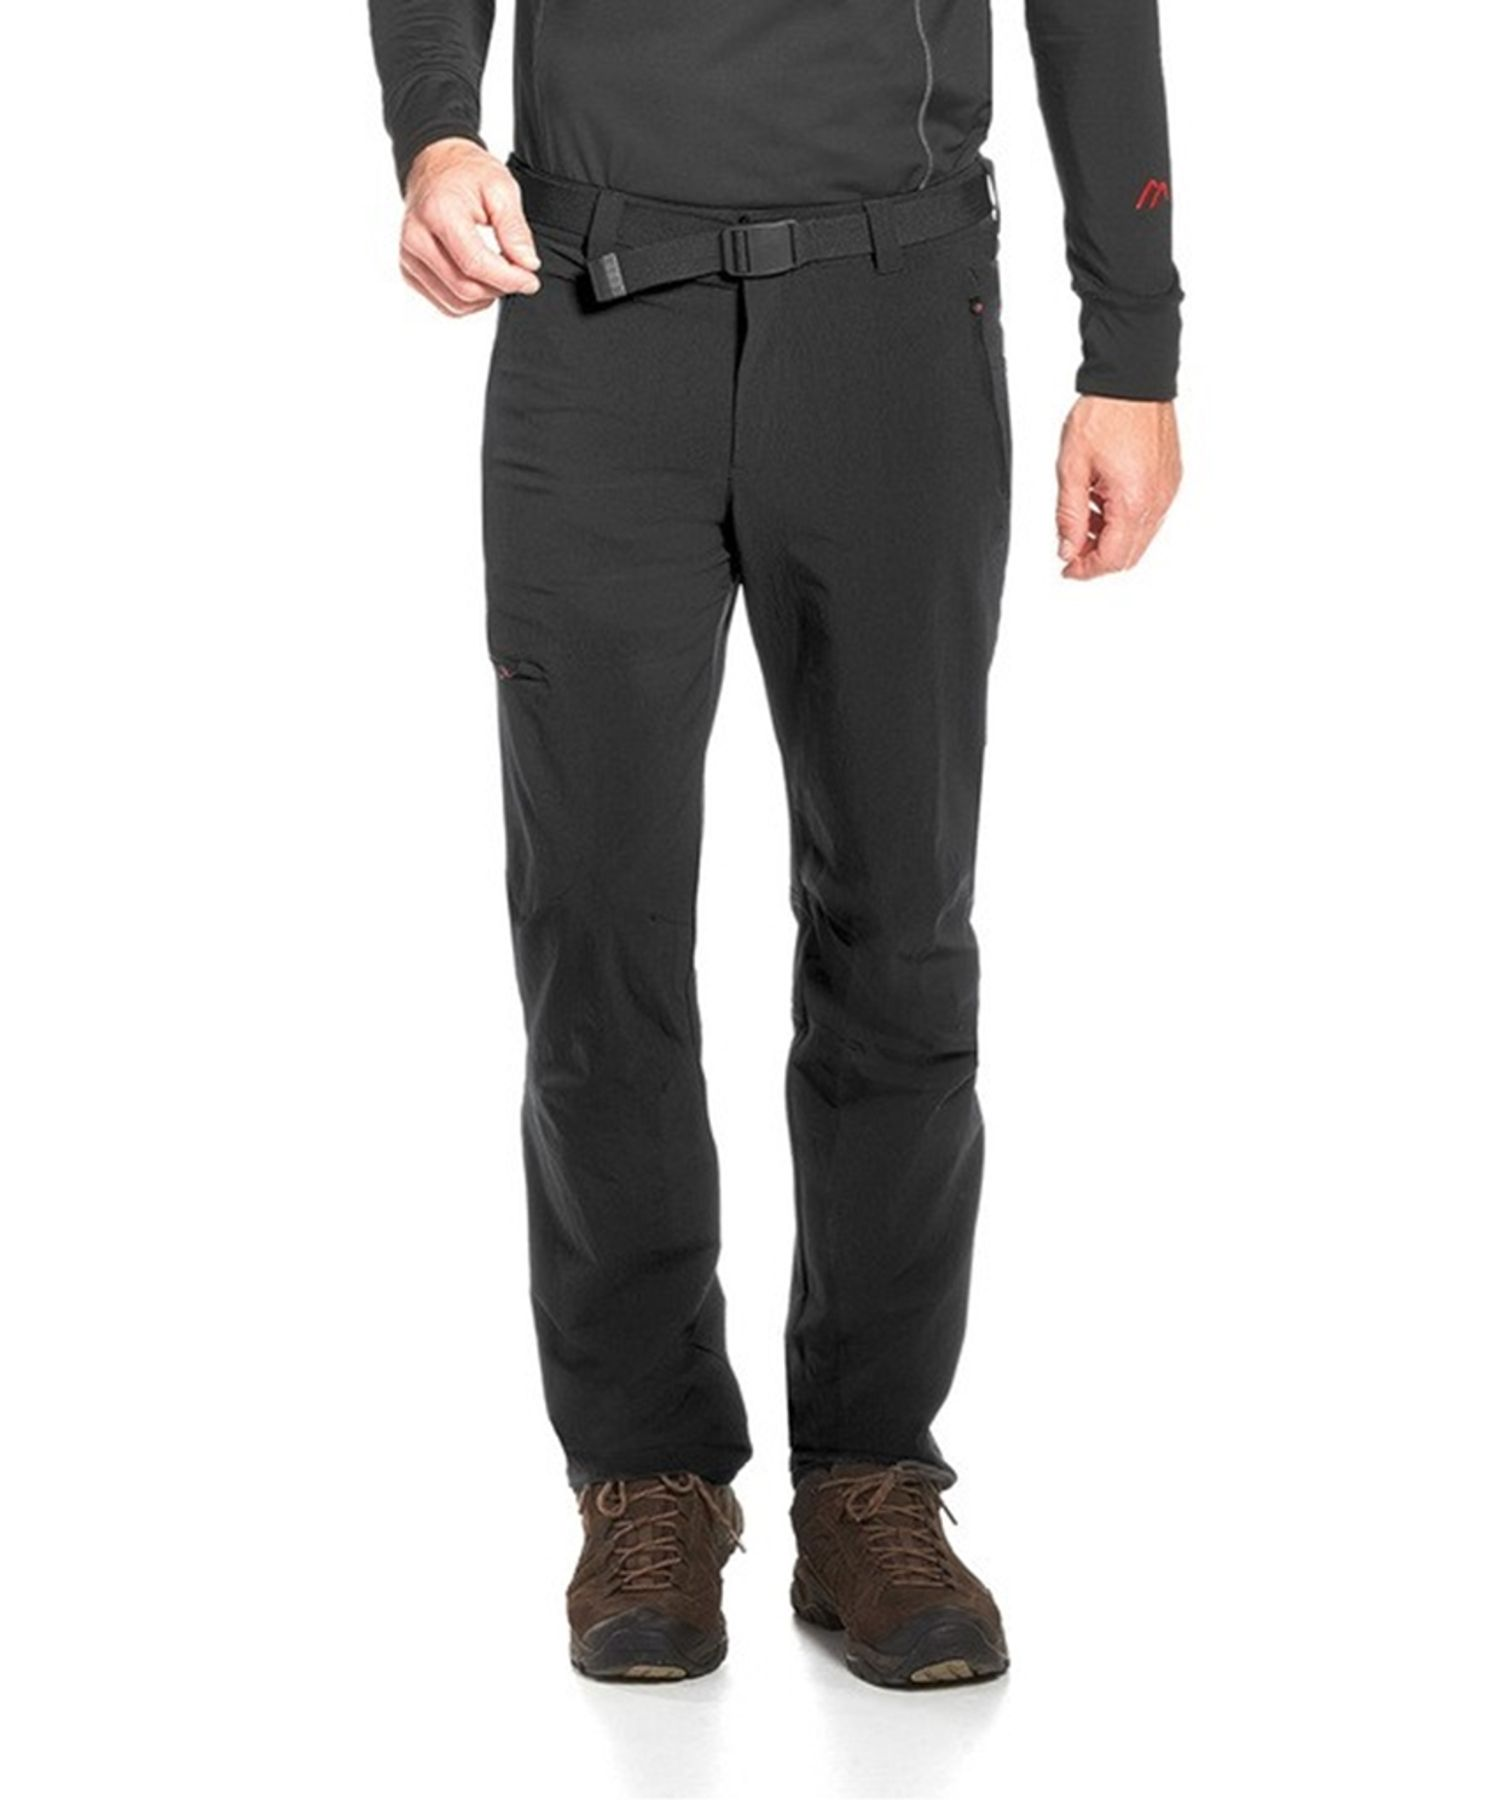 Maier Sports- Herren Outdoor - und Funktions Hose in Black Artikel Oberjoch (137003) – Bild 1